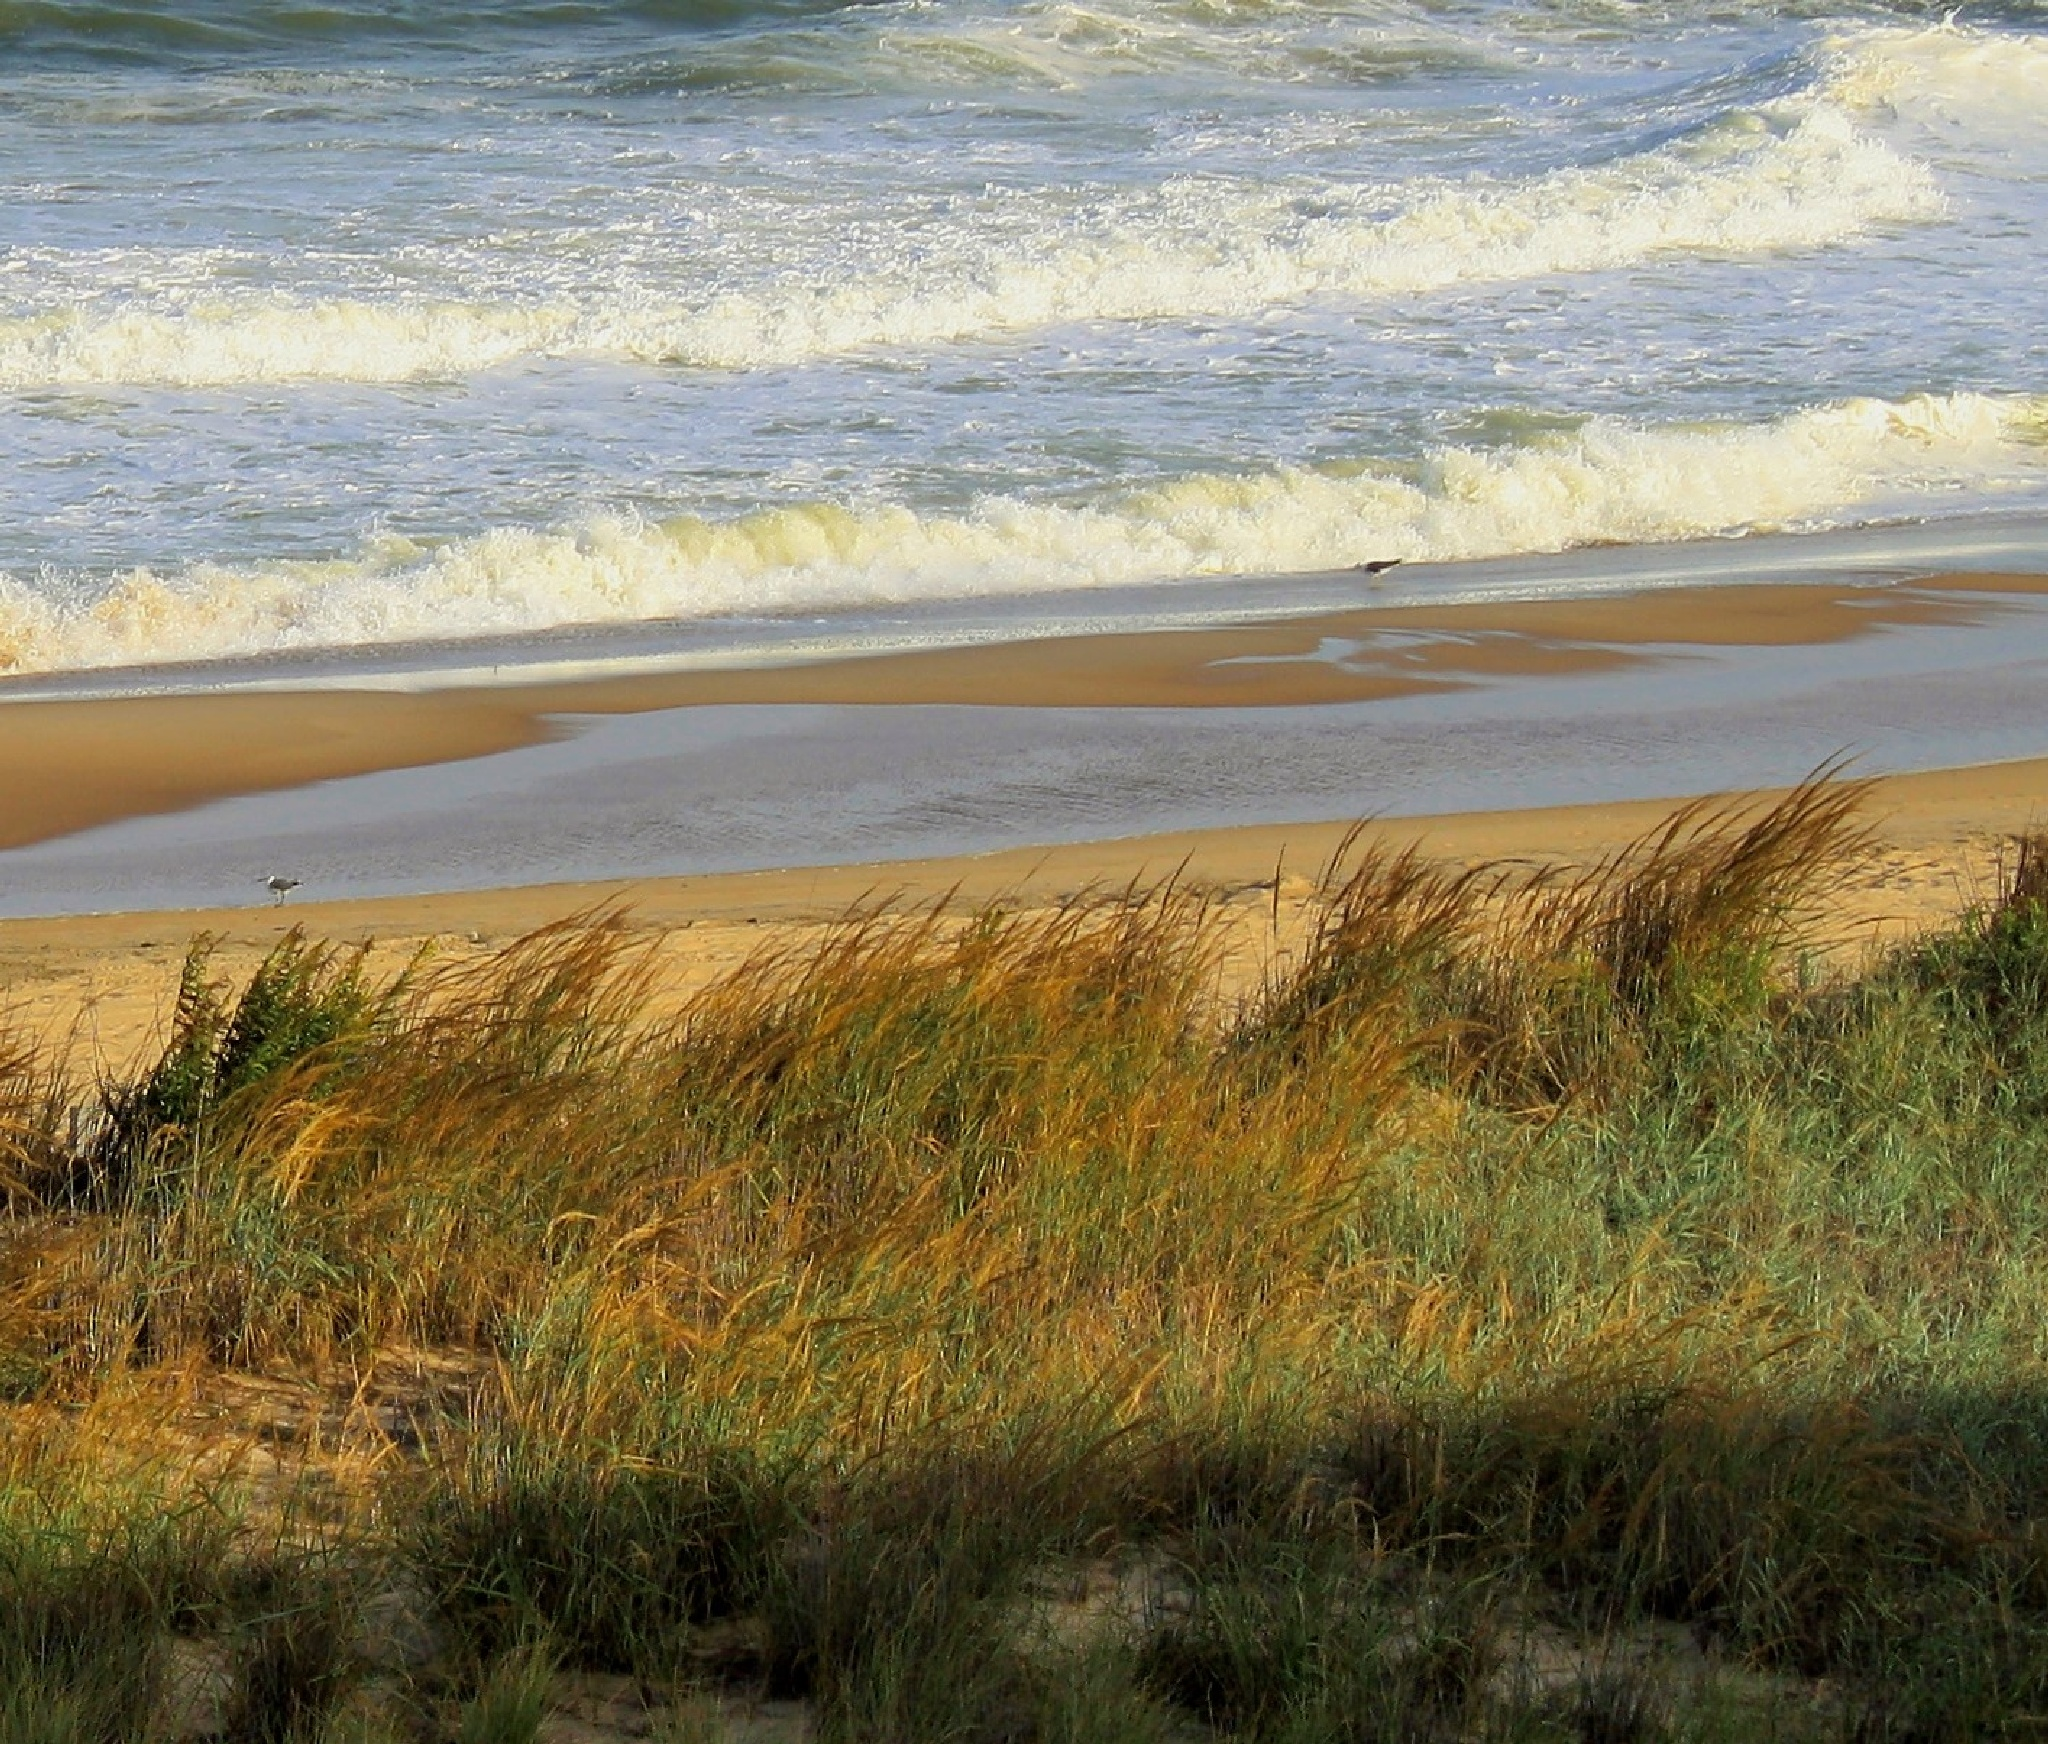 Warmth Grass and Surf by joann.kunkle